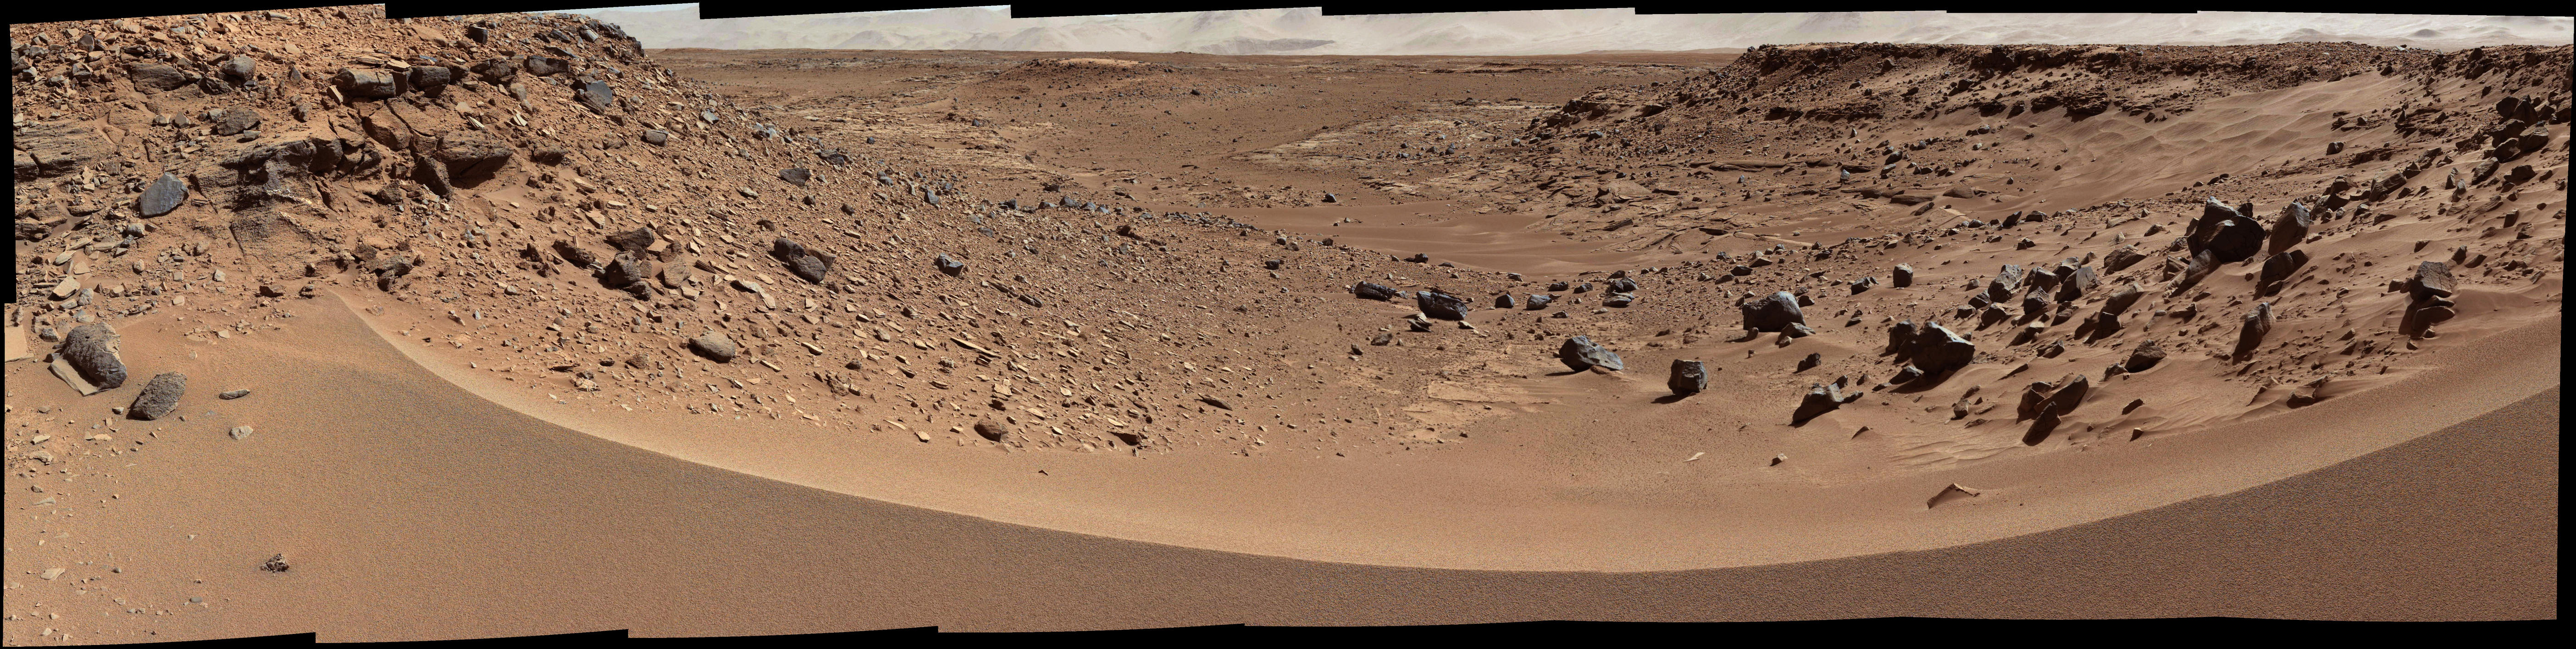 This view combines several frames taken by the Mast Camera (Mastcam) on NASA's Mars rover Curiosity, looking into a valley to the west from the eastern side of a dune at the eastern end of the valley.